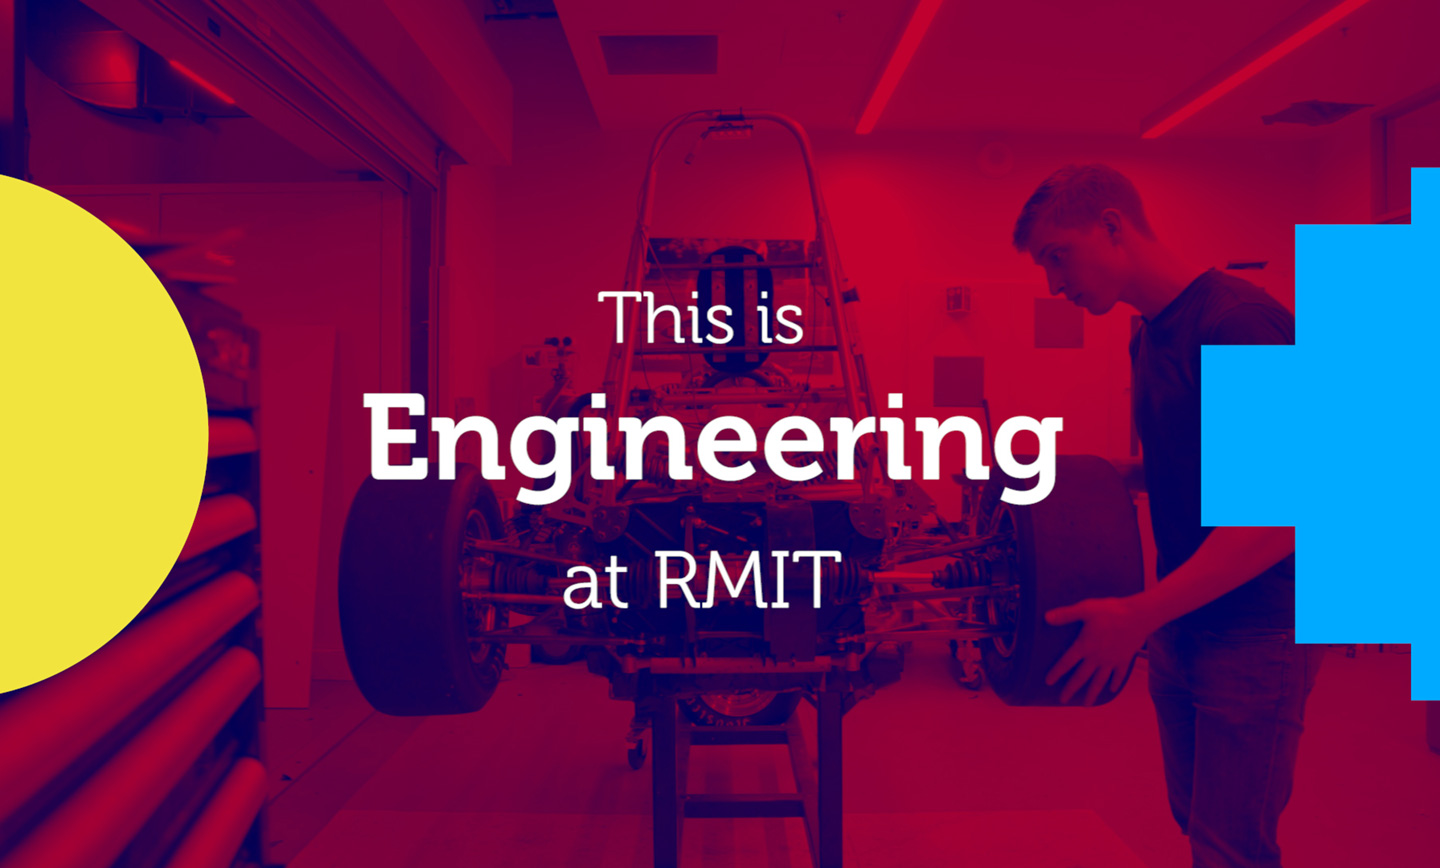 The words This is Engineering at RMIT over red background